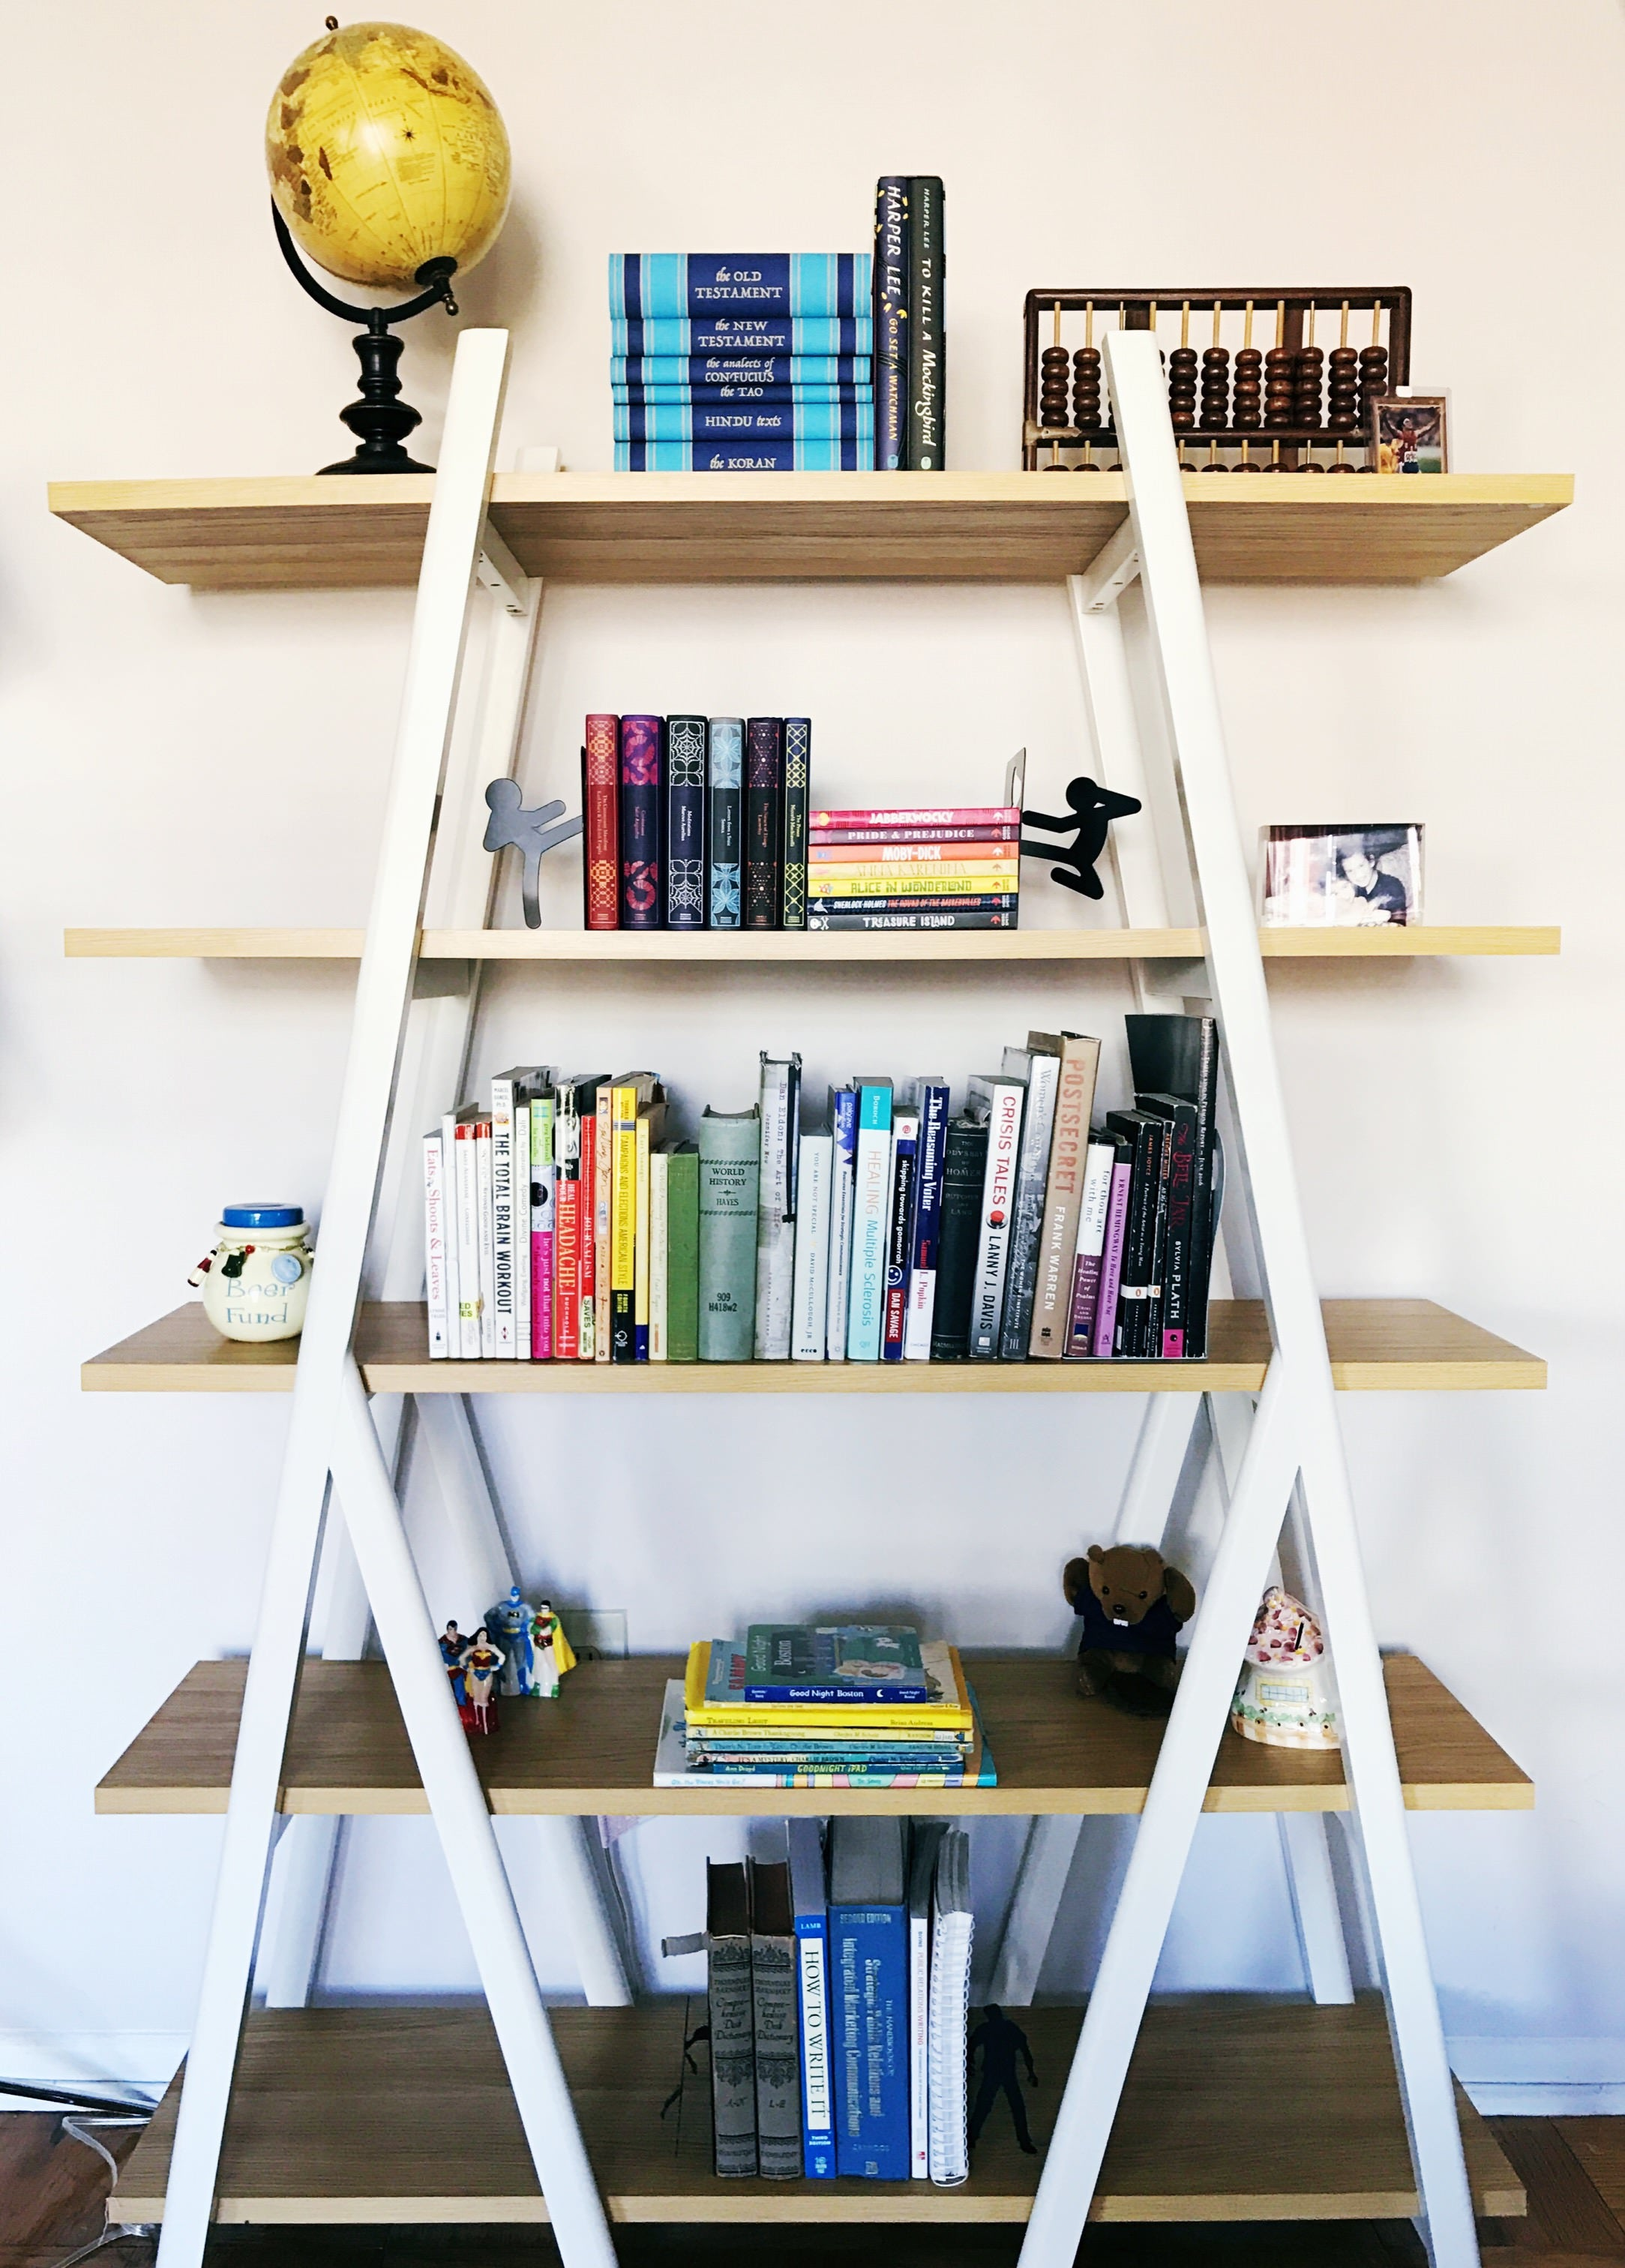 bookcase design, san francisco home organizing, organized bookshelf, organized spaces